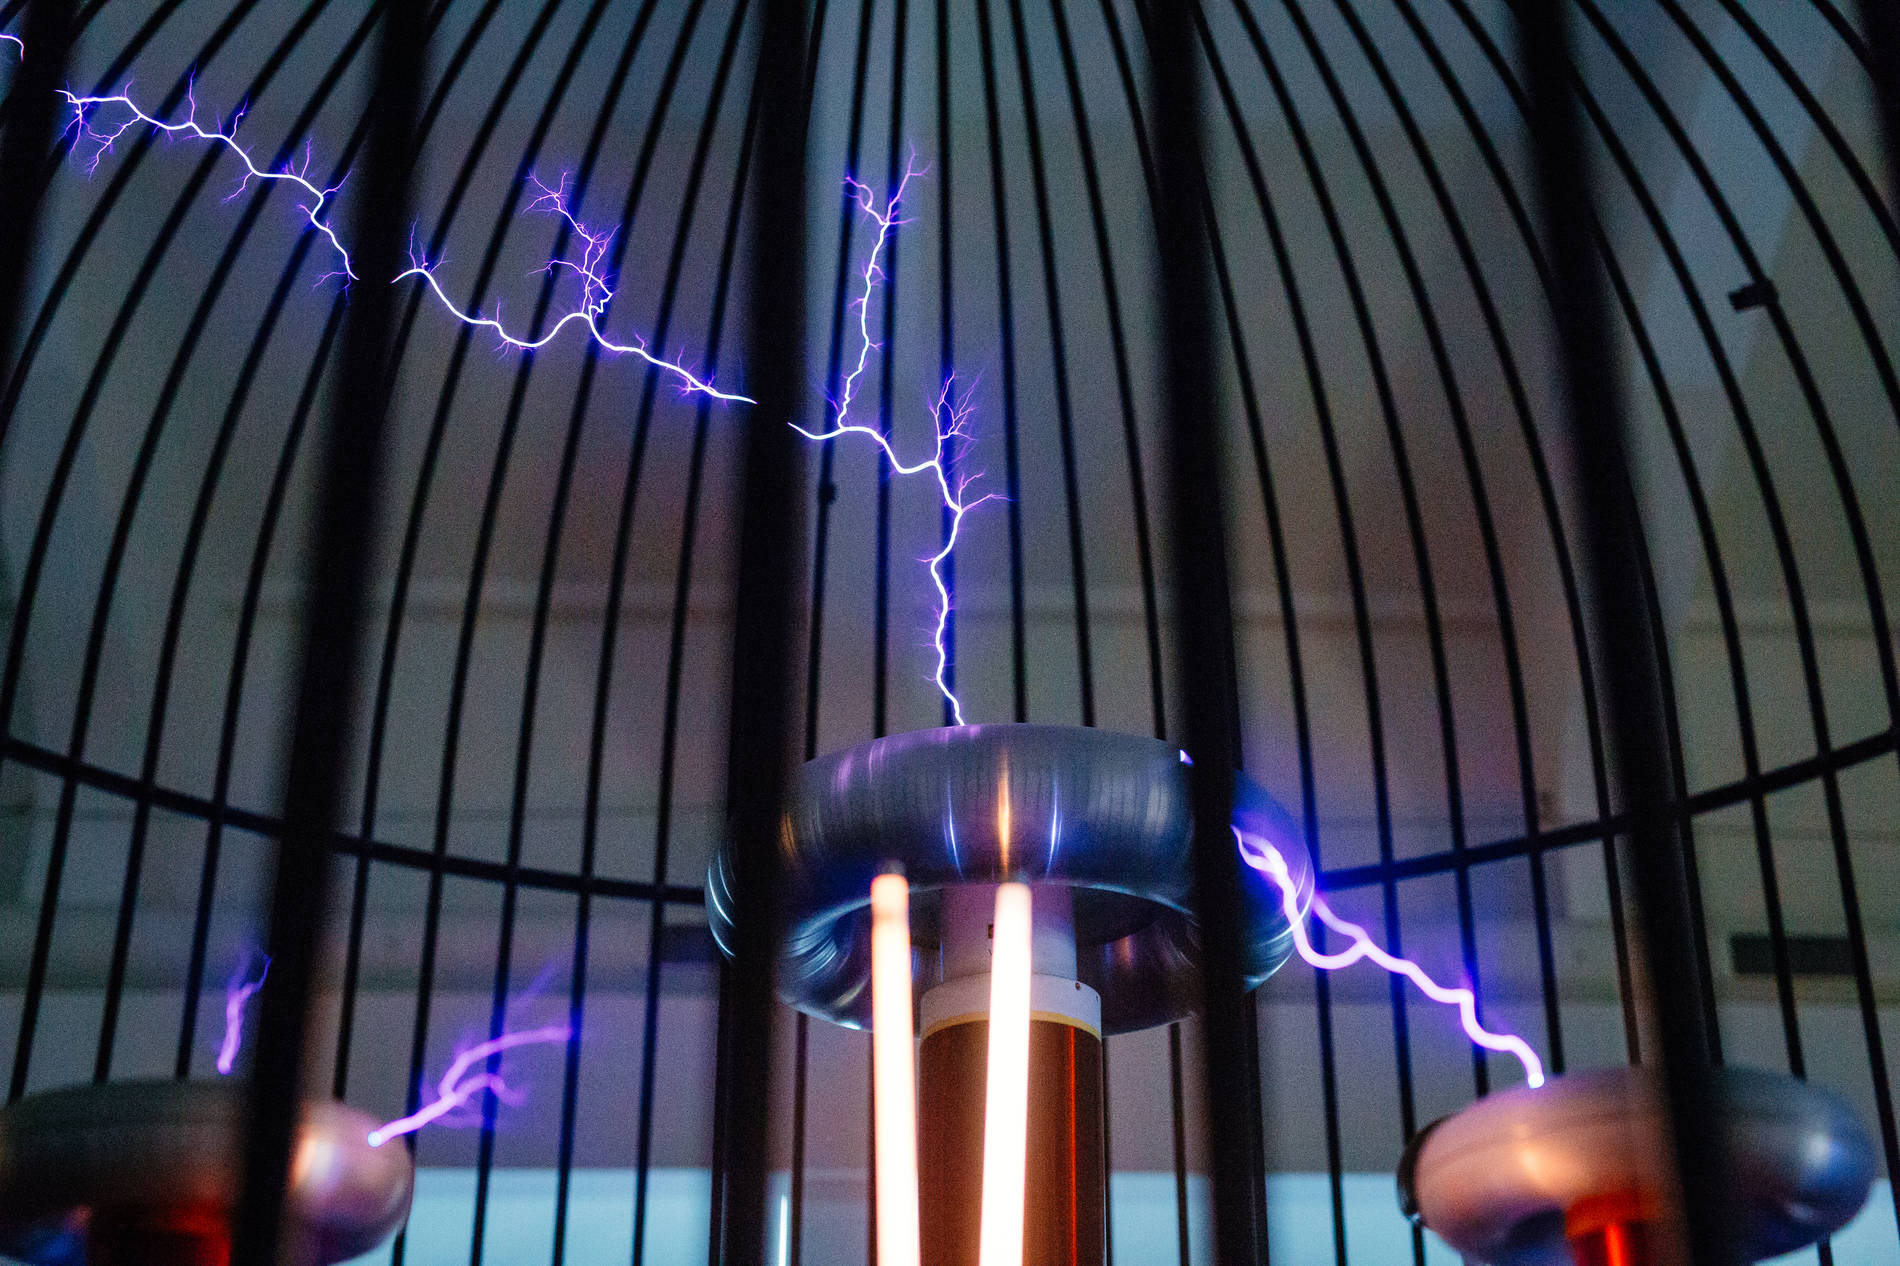 Electric flash at the Energy Discovery Centre in Tallinn, Estonia